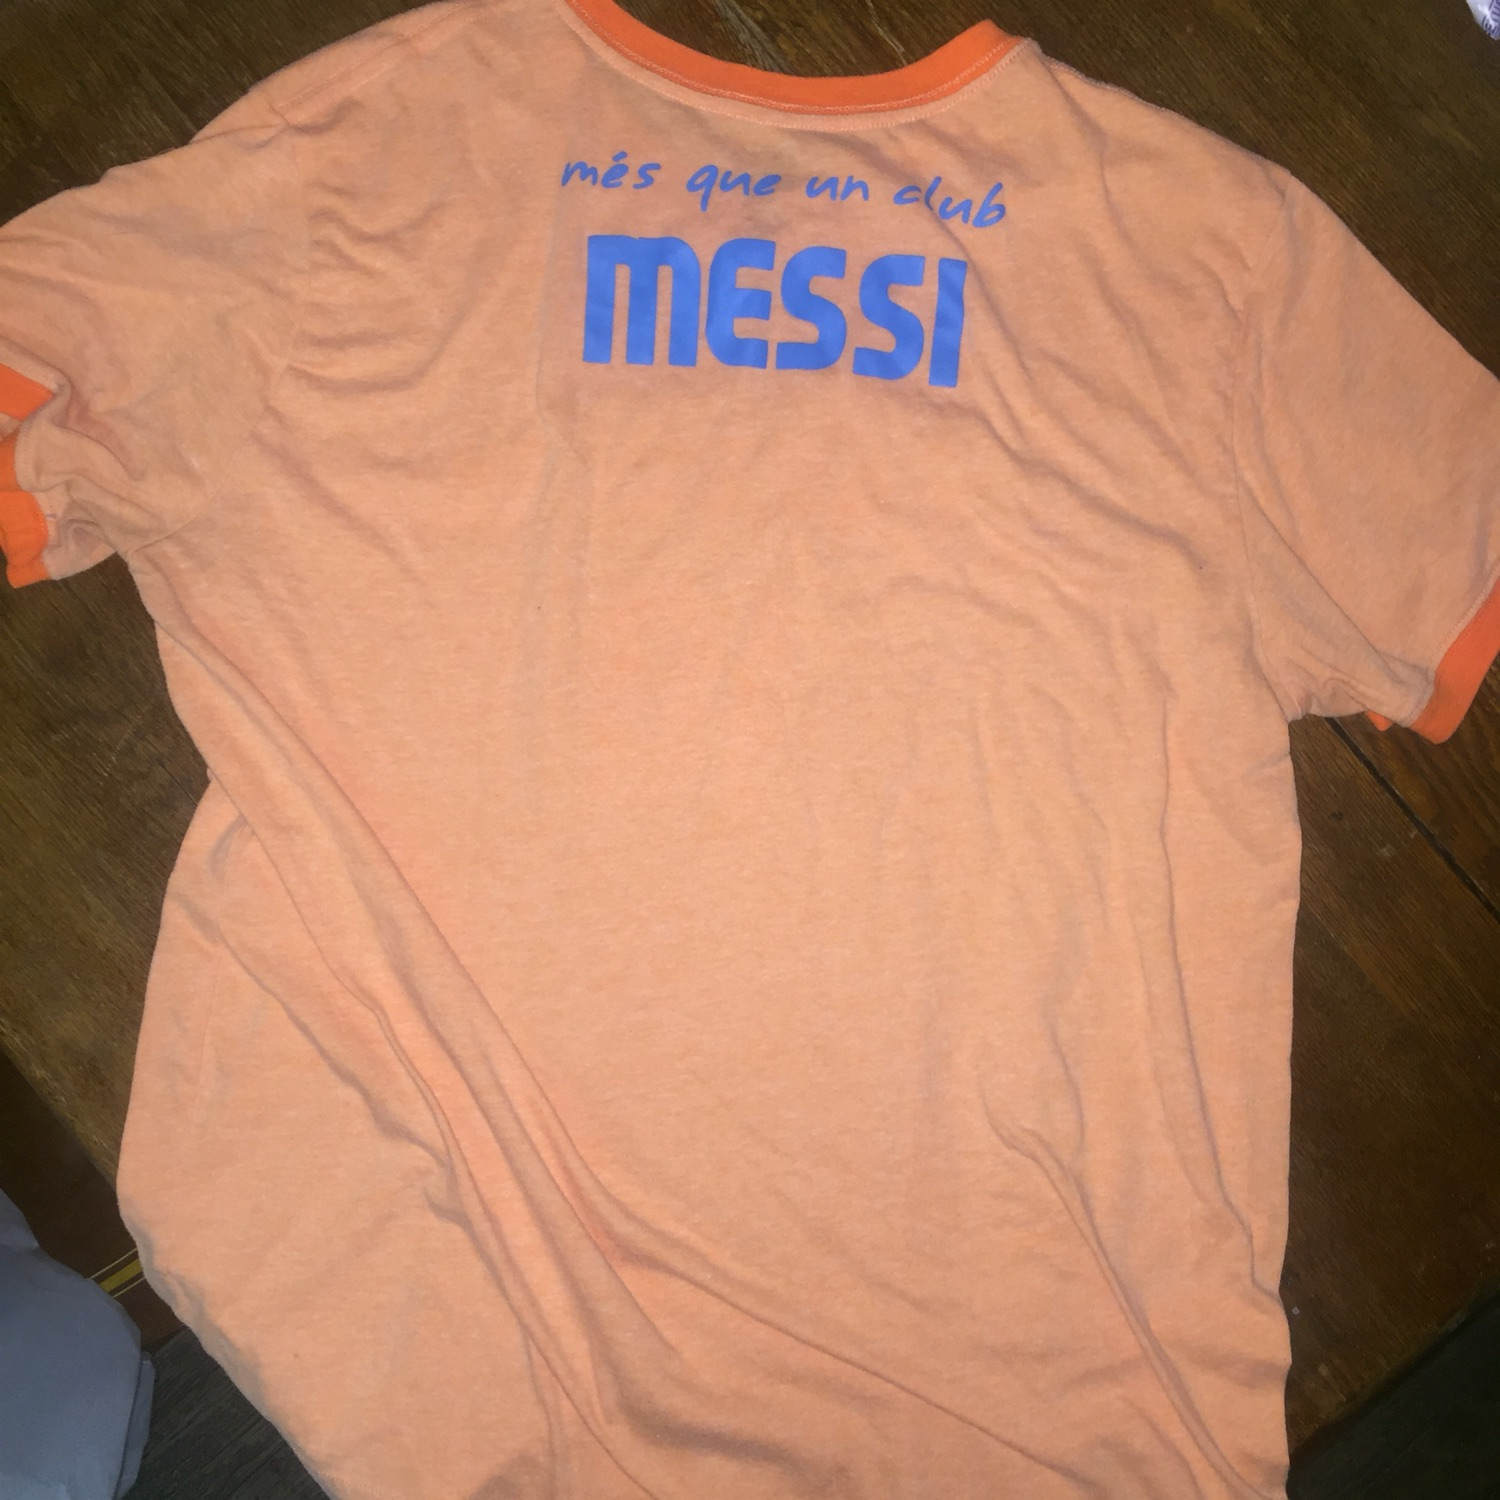 Fc Barcelona Messi Vneck T-Shirt Jersey Orange